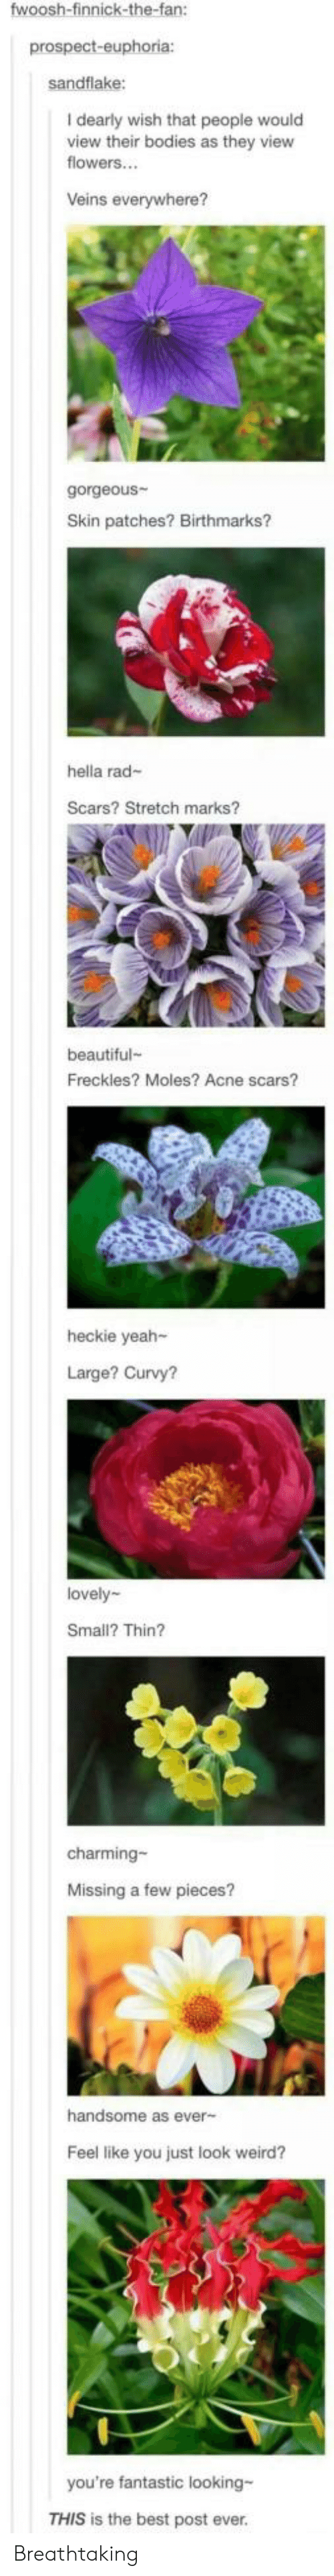 freckles: fwoosh-finnick-the-fan:  prospect-euphoria:  sandflake:  I dearly wish that people would  view their bodies as they view  flowers...  Veins everywhere?  gorgeous  Skin patches? Birthmarks?  hella rad-  Scars? Stretch marks?  beautiful  Freckles? Moles? Acne scars?  heckie yeah-  Large? Curvy?  lovely  Small? Thin?  charming-  Missing a few pieces?  handsome as ever-  Feel like you just look weird?  you're fantastic looking-  THIS is the best post ever. Breathtaking